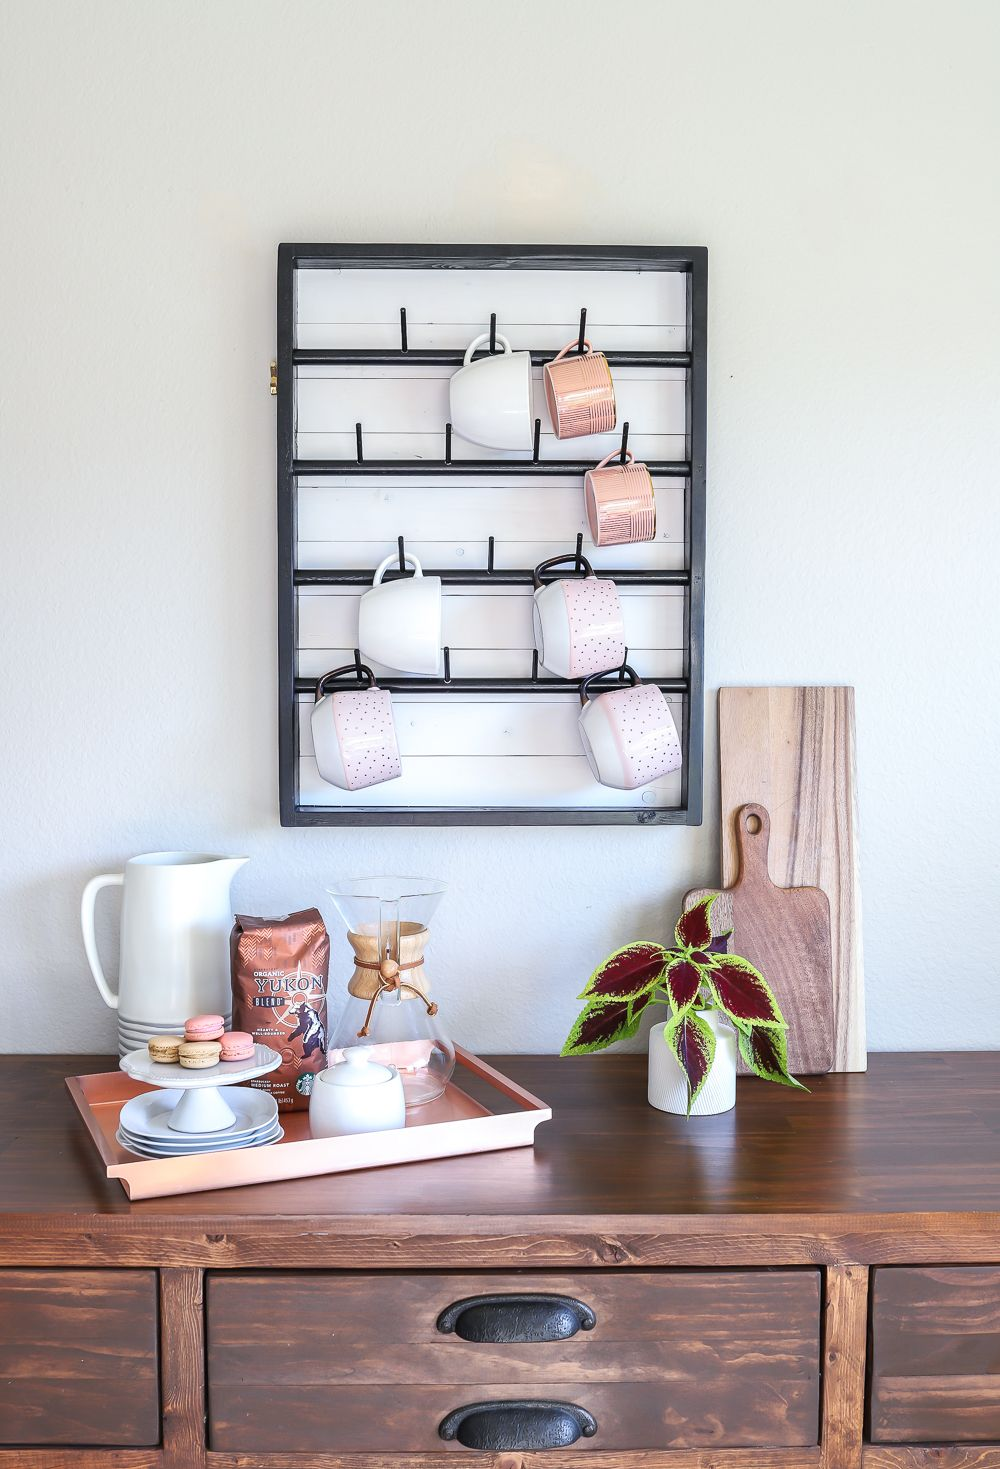 How To Make A DIY WallMounted Coffee Mug Display Rack